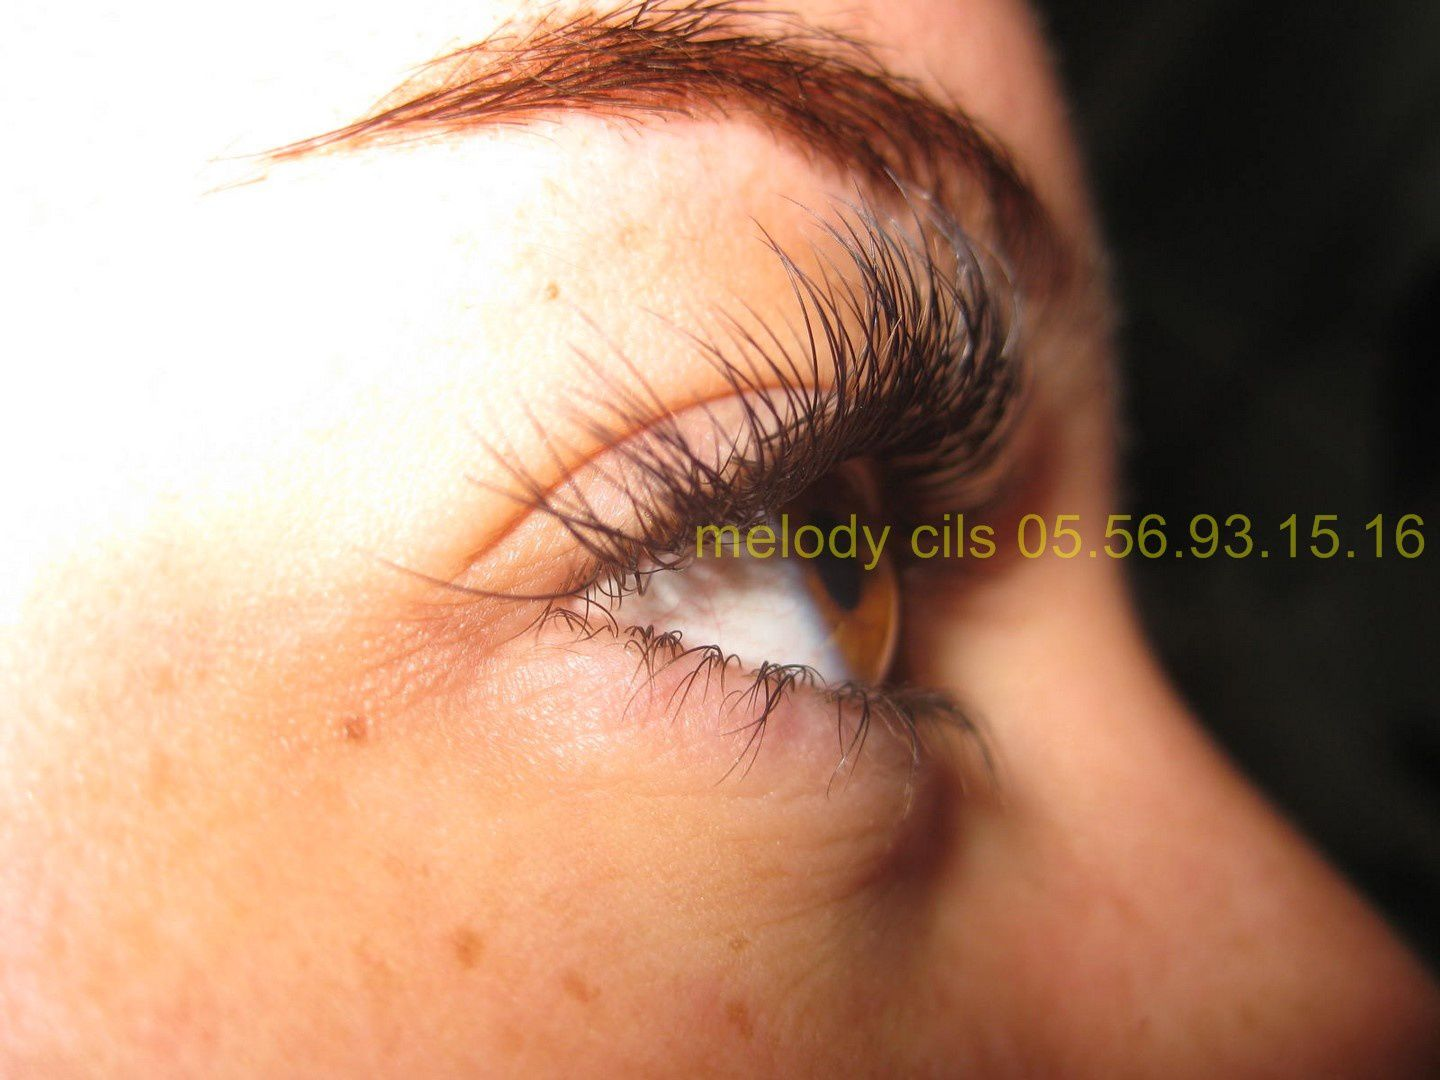 #extension de cils Melody